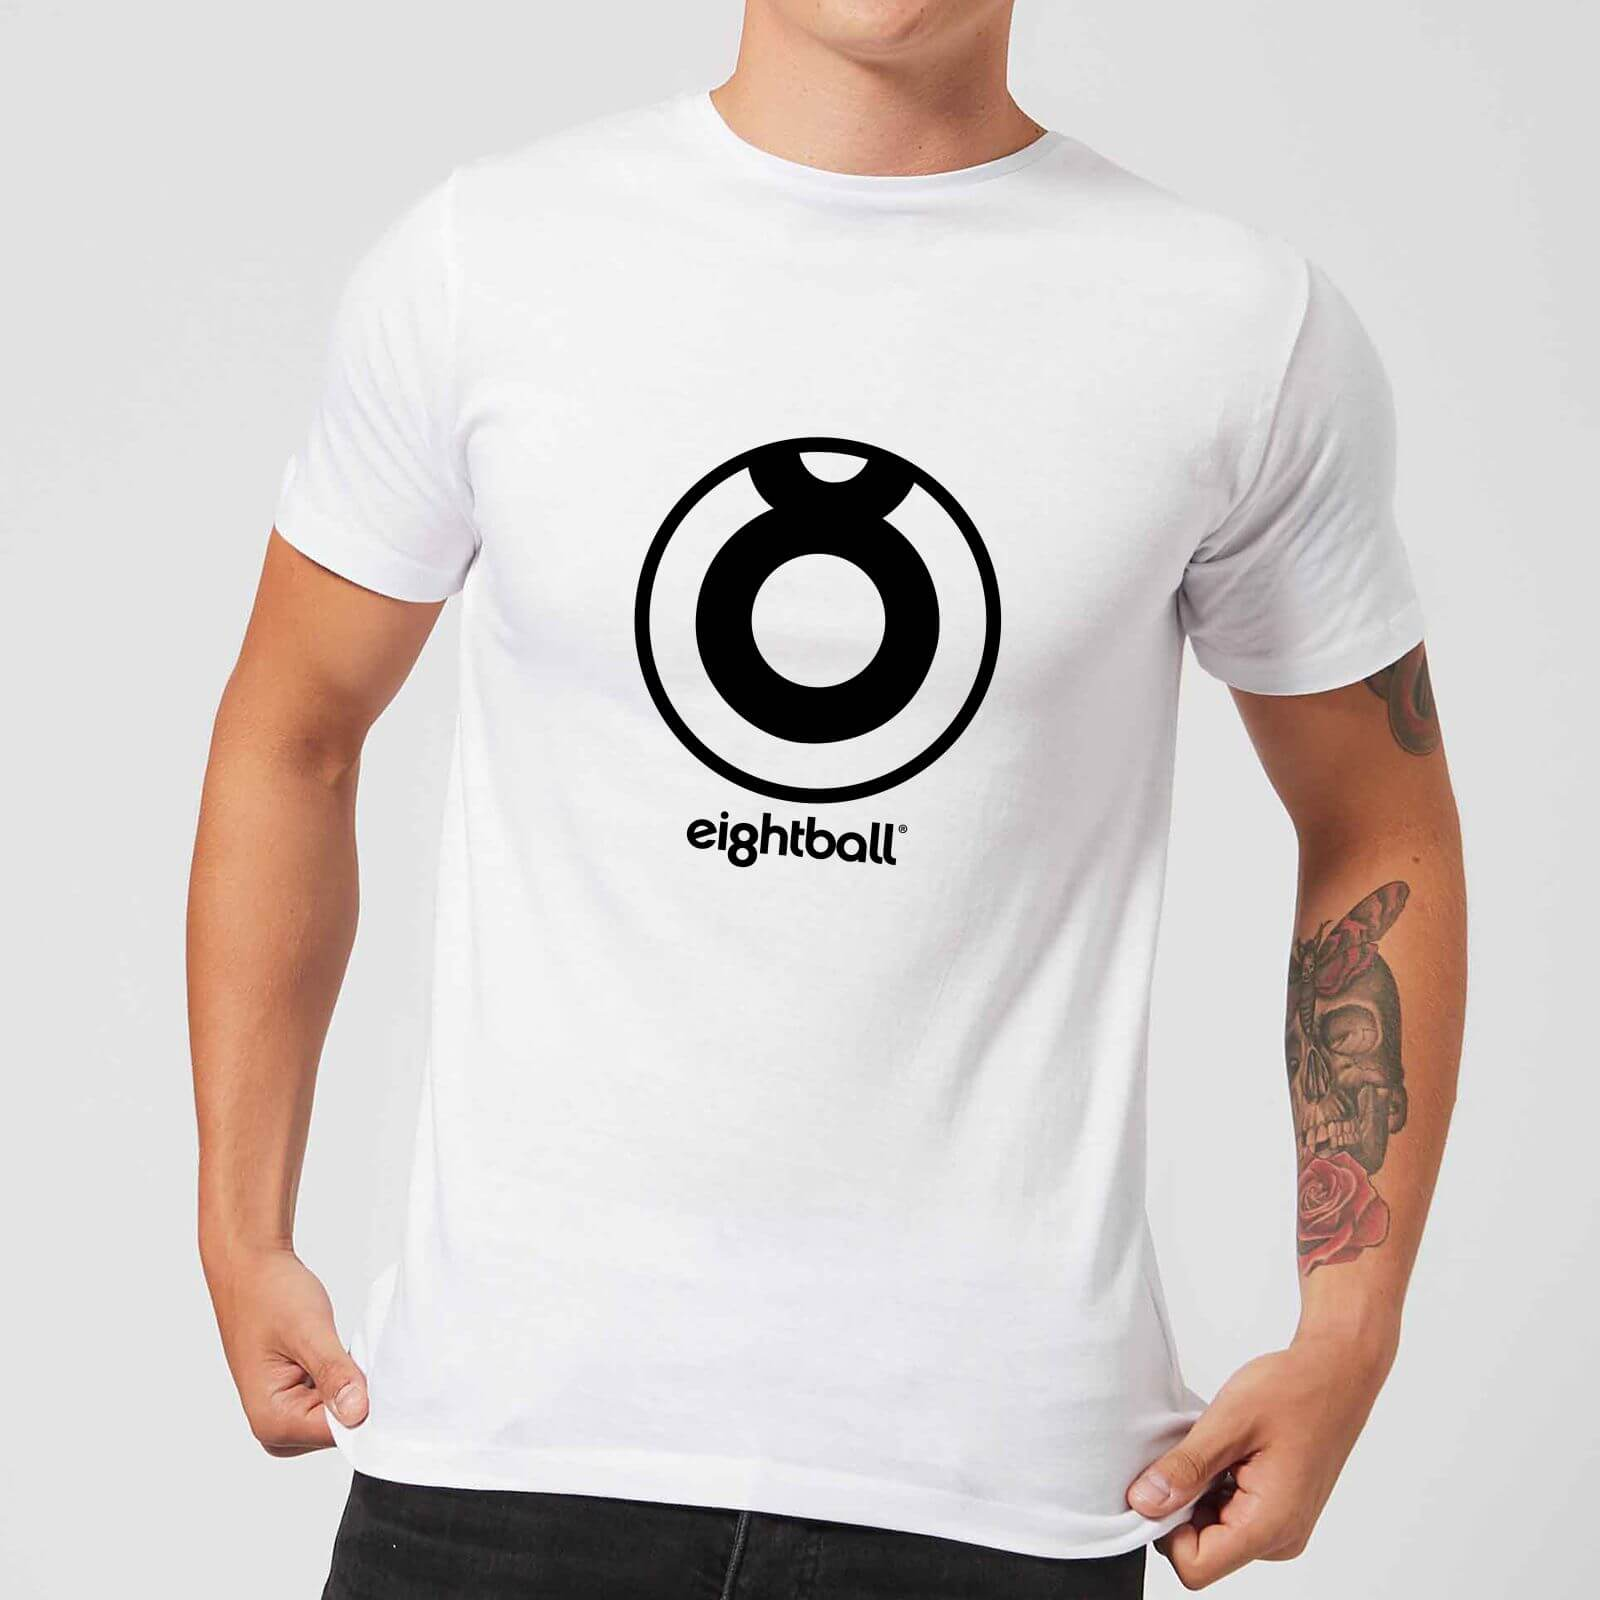 861908a2f Ei8htball Large Circle Logo Men's T-Shirt - White Merchandise | Zavvi